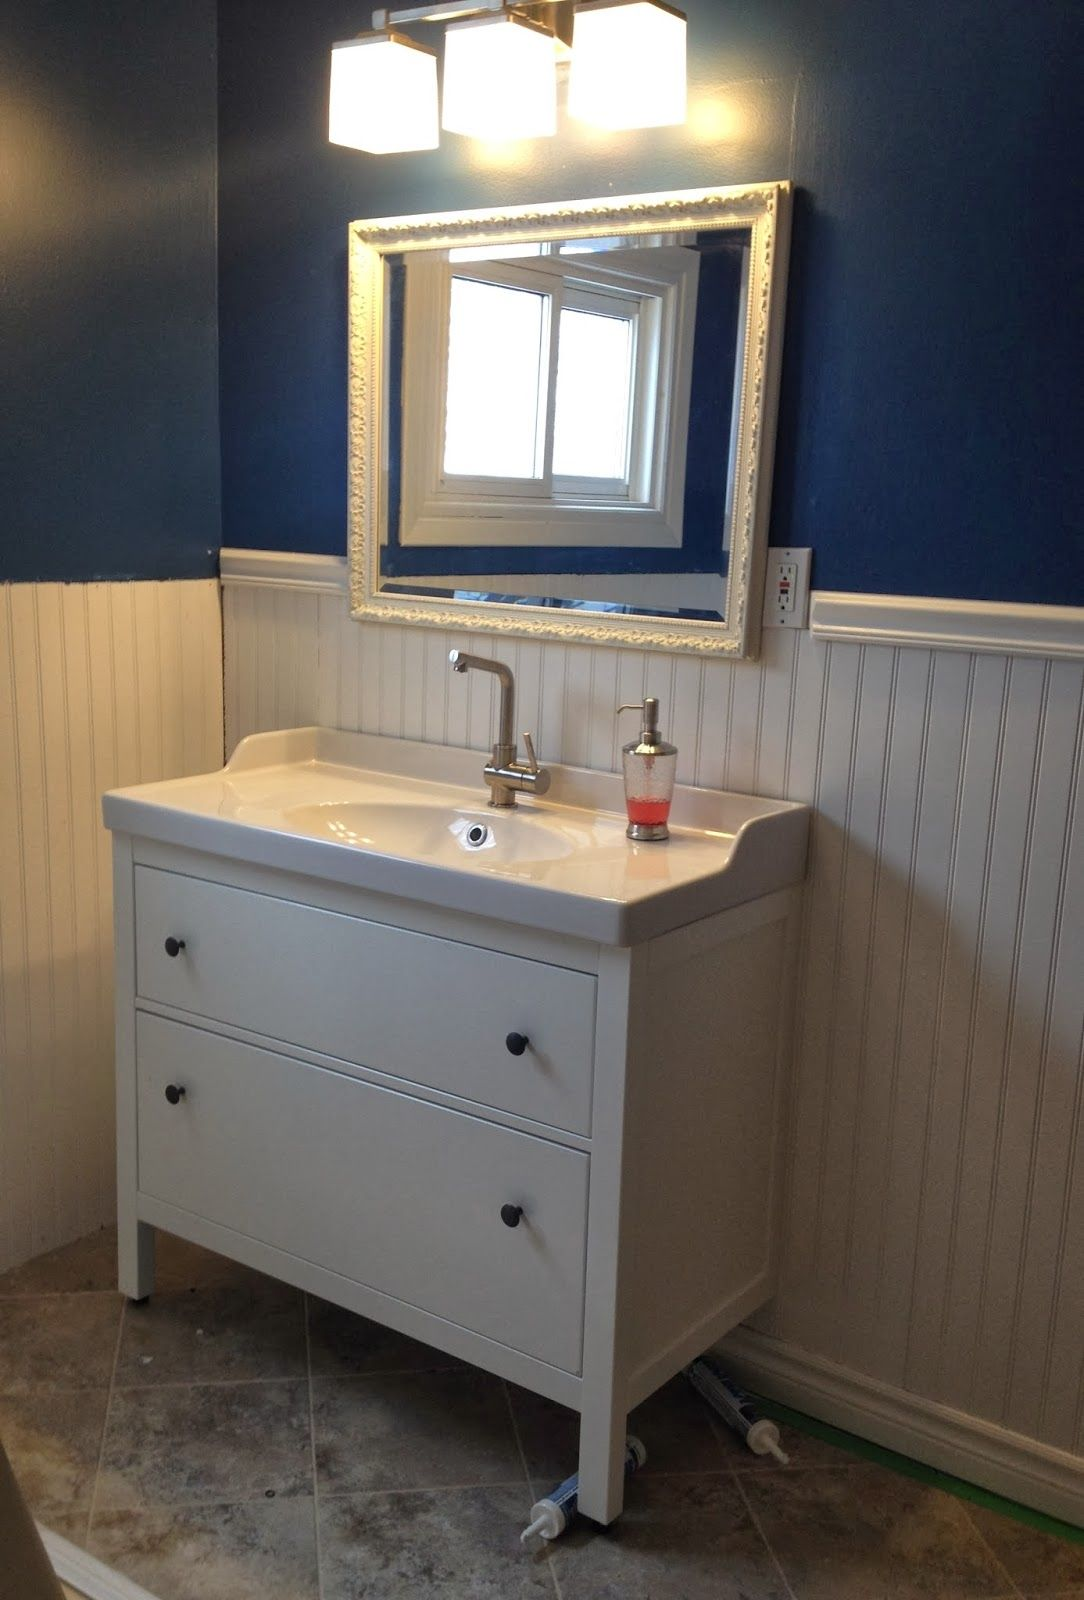 Ikea Hemnes Bathroom Vanity Review In 2020 Custom Bathroom Vanity Bathroom Vanity Ikea Bathroom Furniture